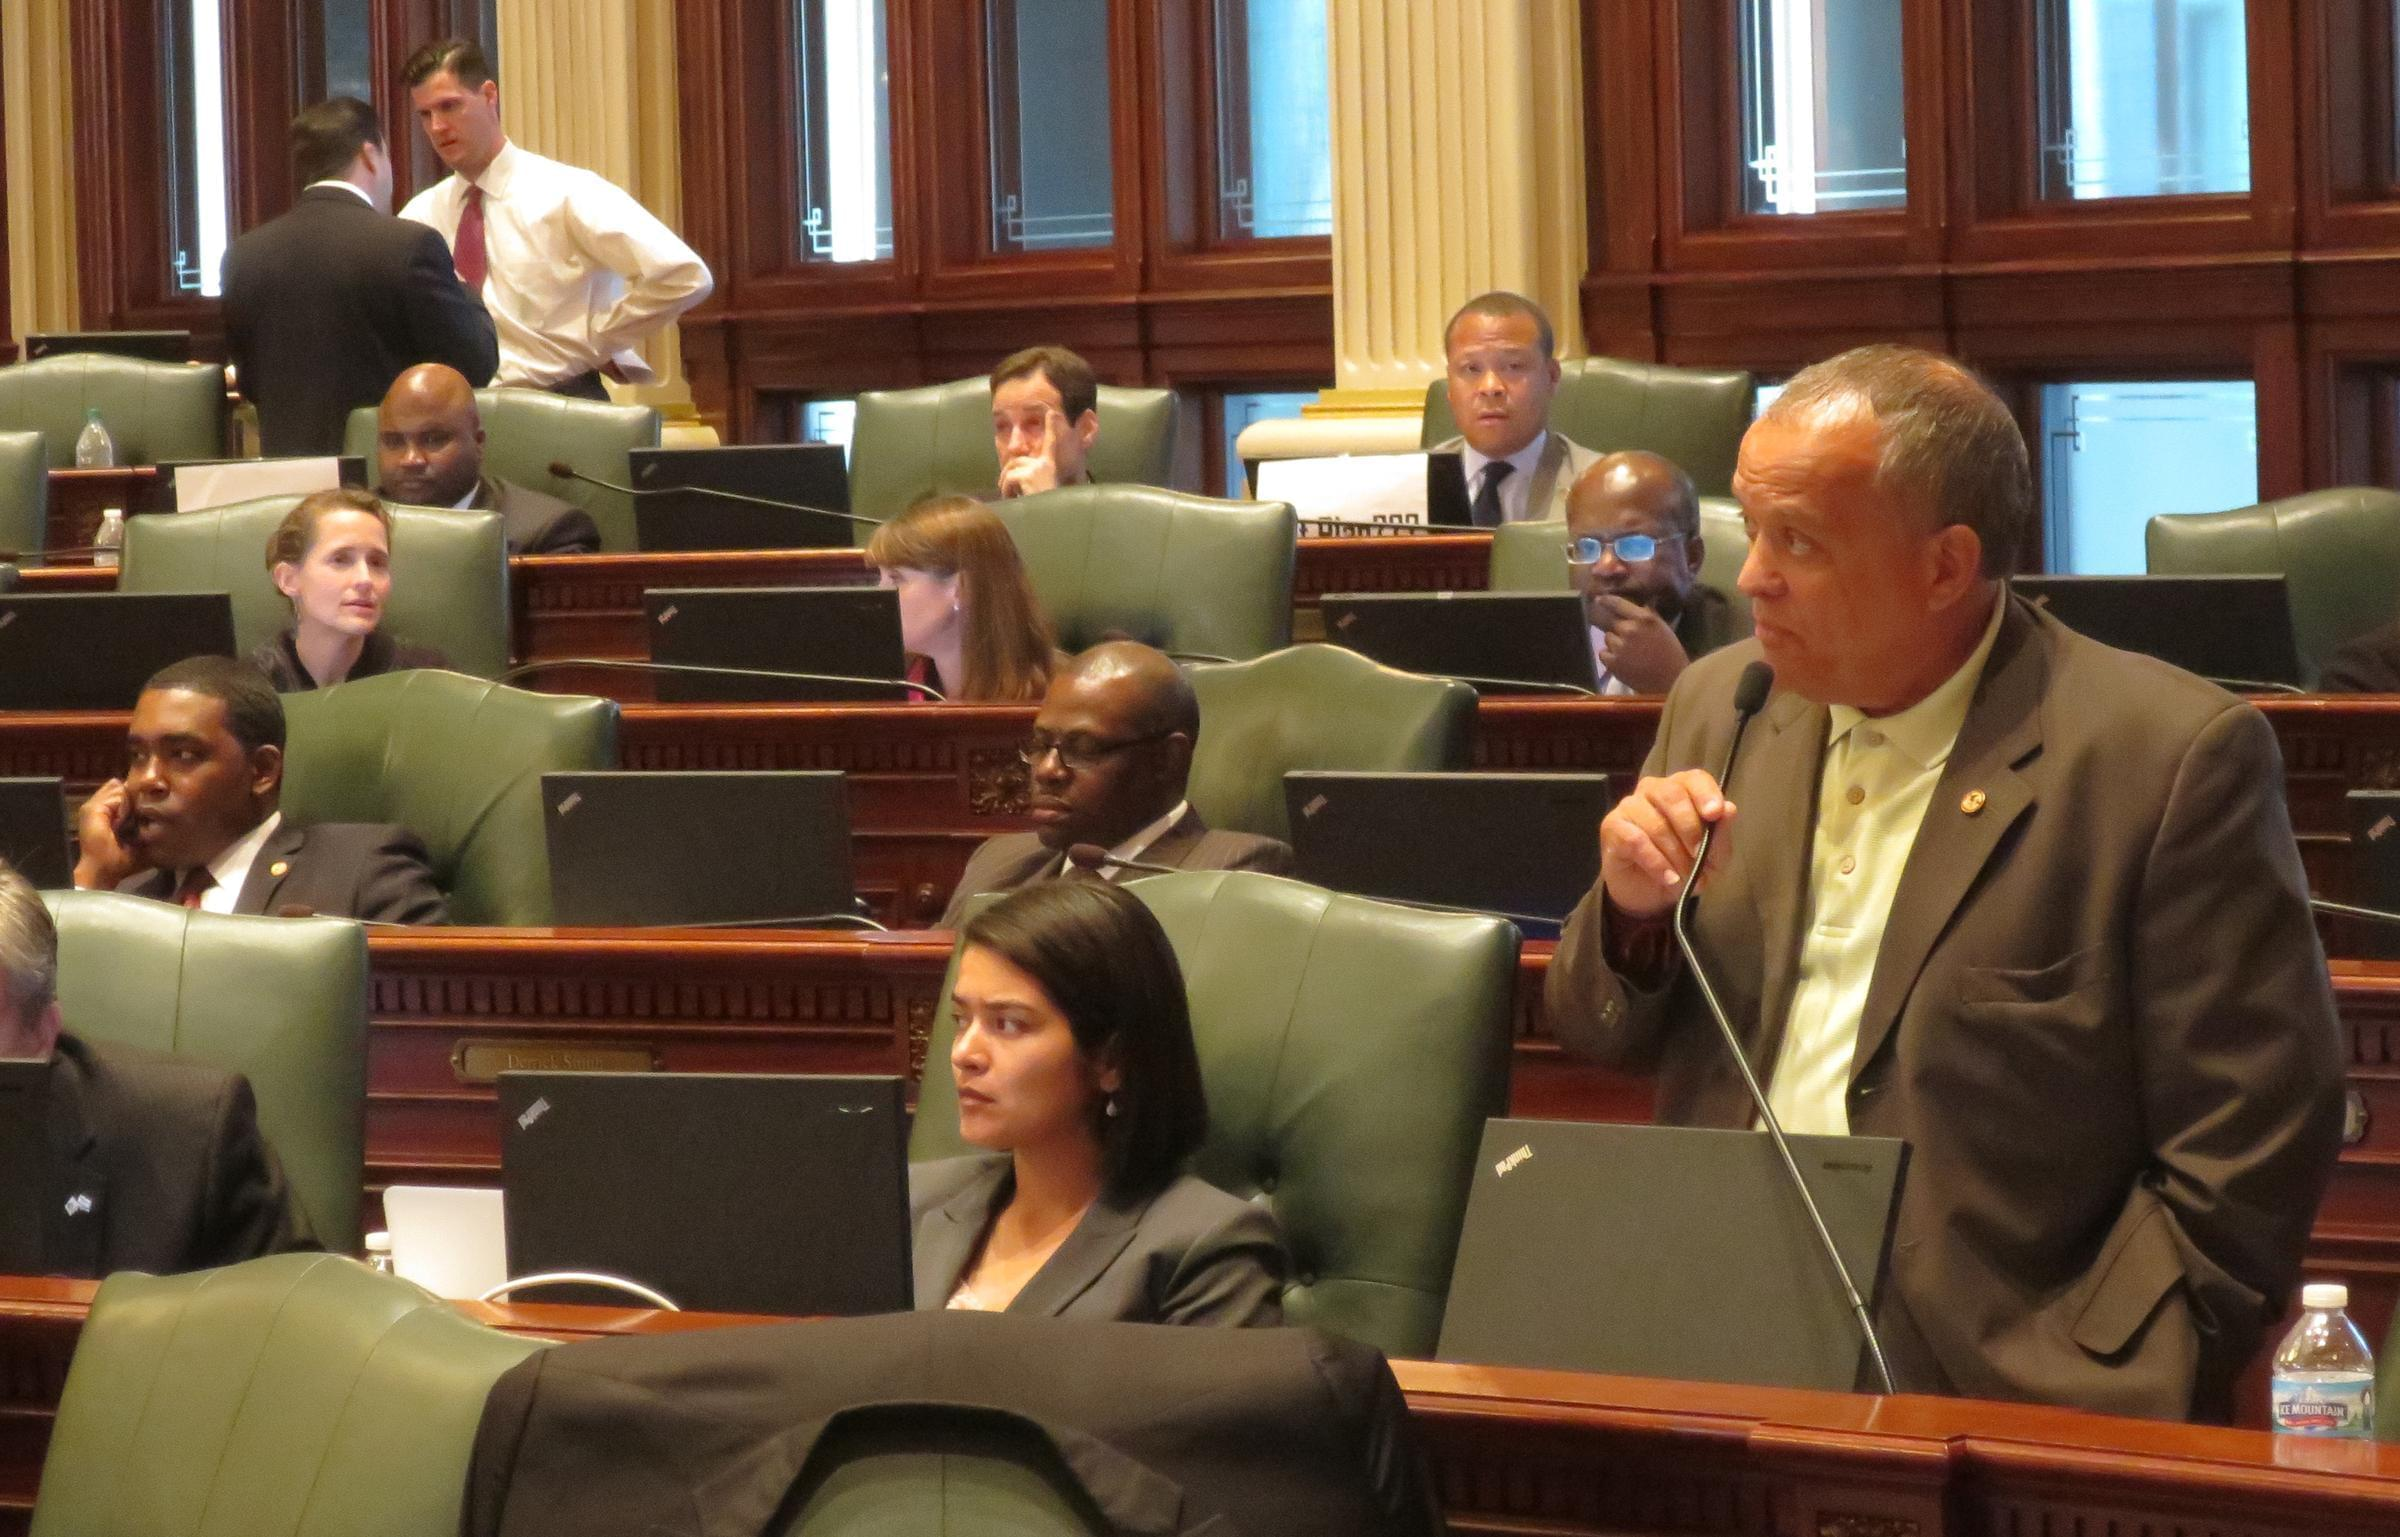 Rep. Luis Arroyo presents budget legislation on the floor of the Illinois House in this file photo from May 27, 2014.